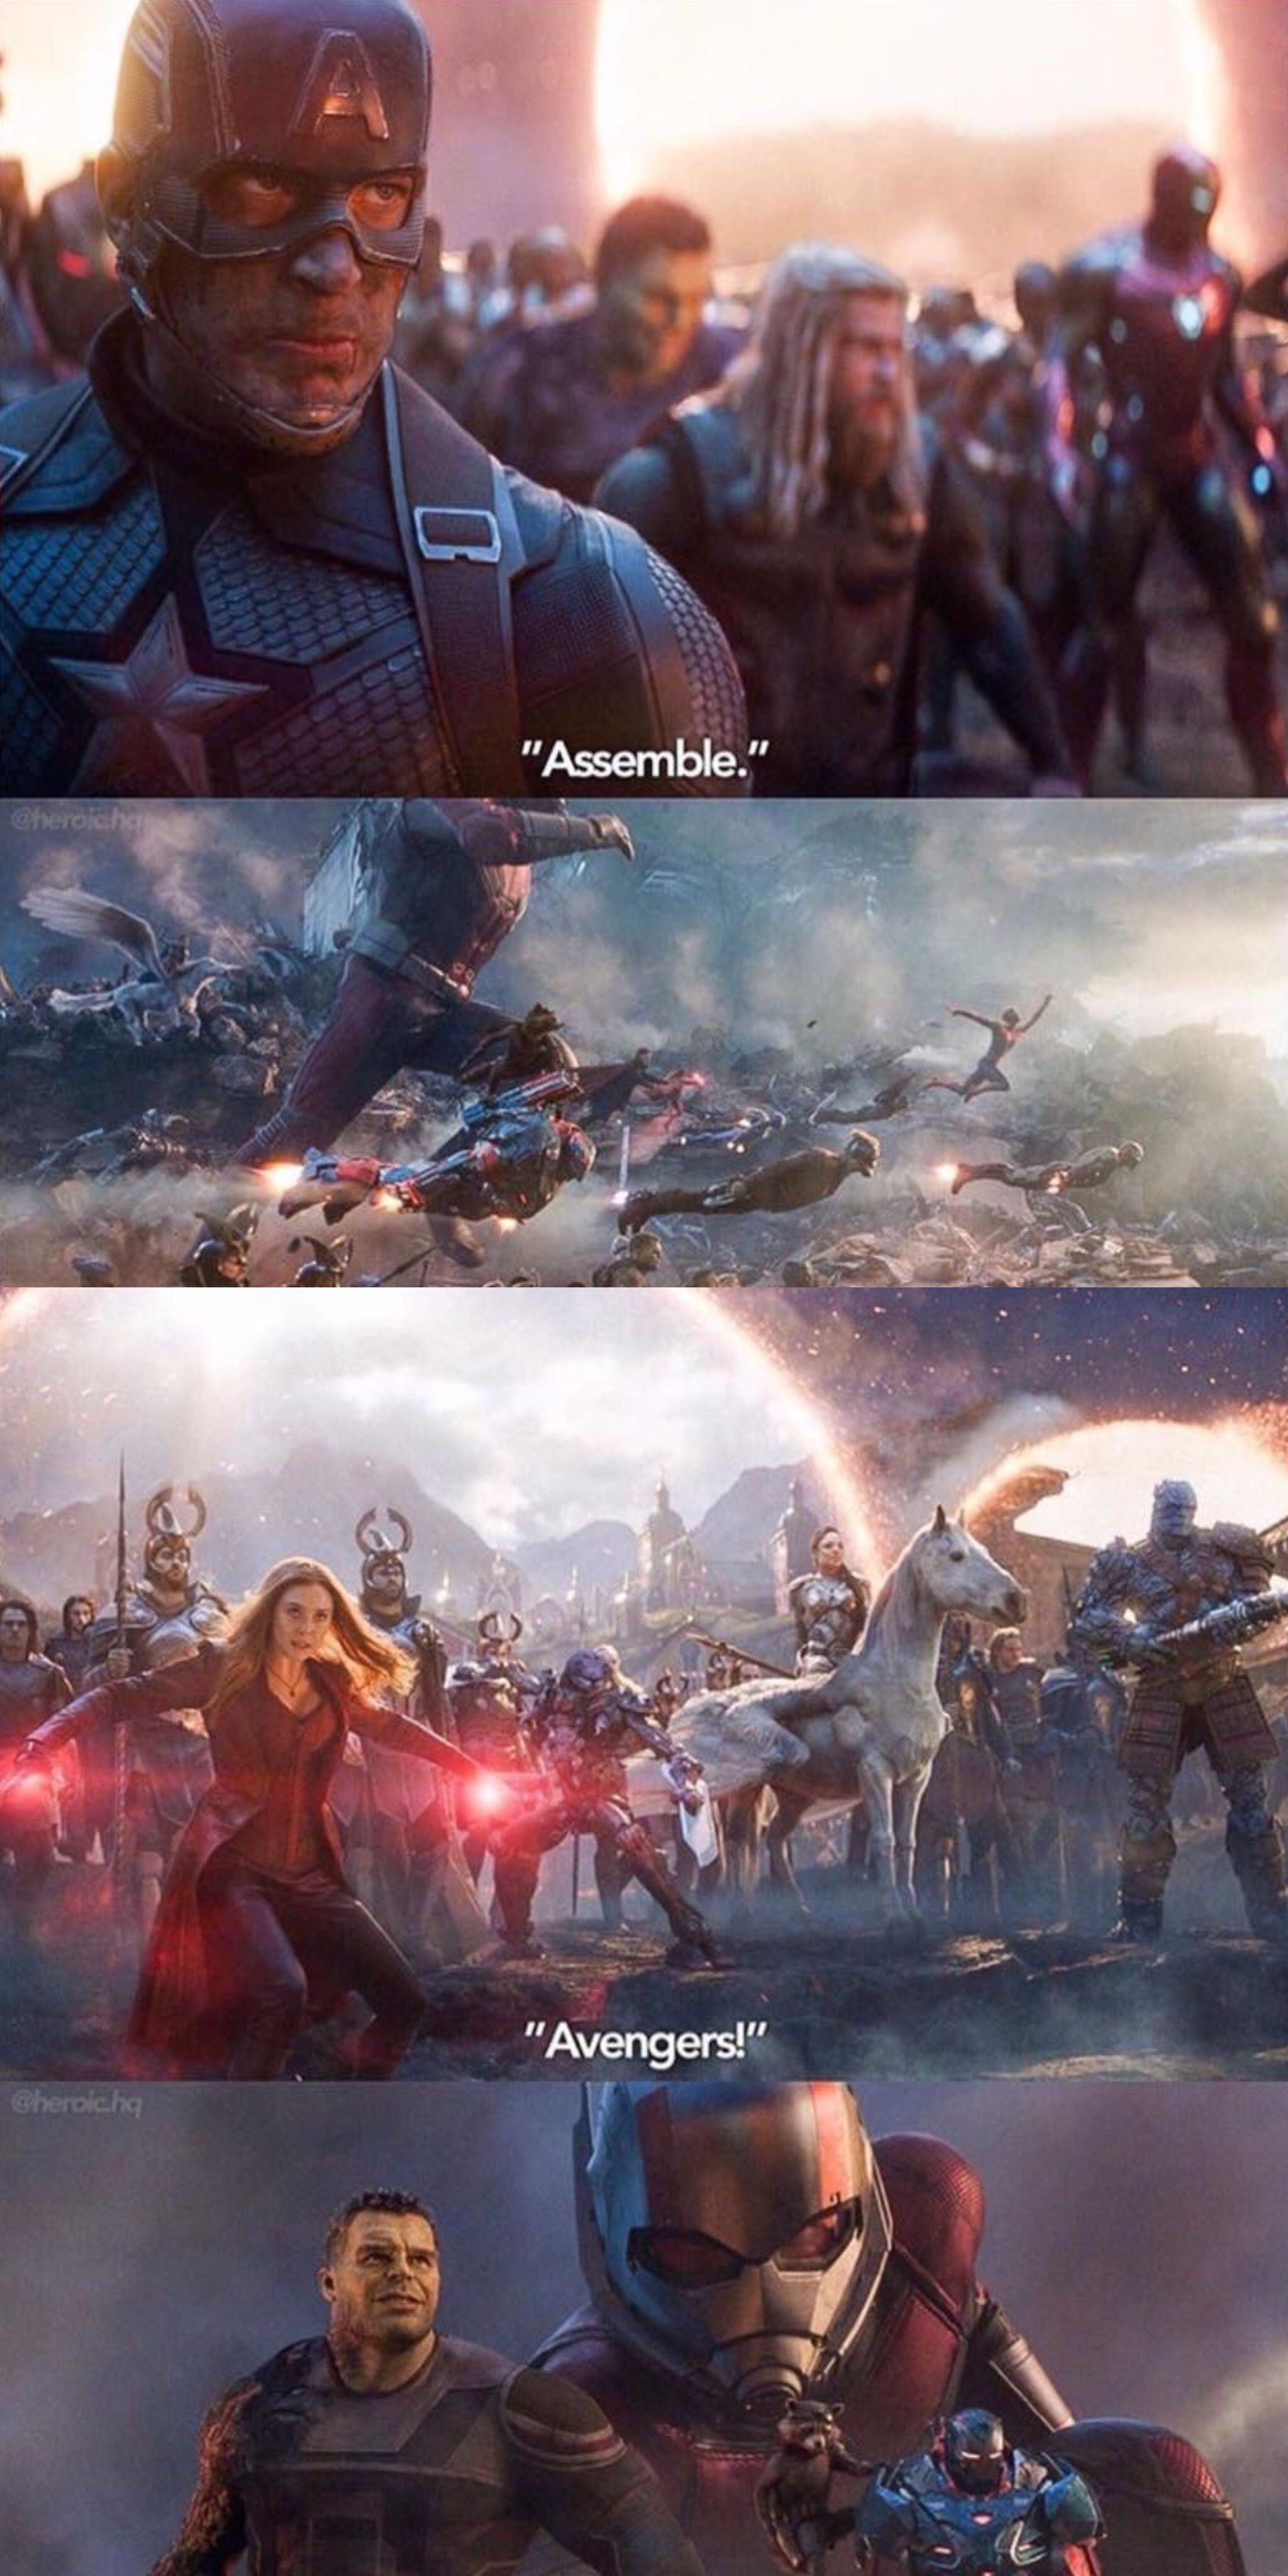 Join Marvel on thefandome.com and get free access to Advanced Geek Blogging. #thefandome #geek #Marvel